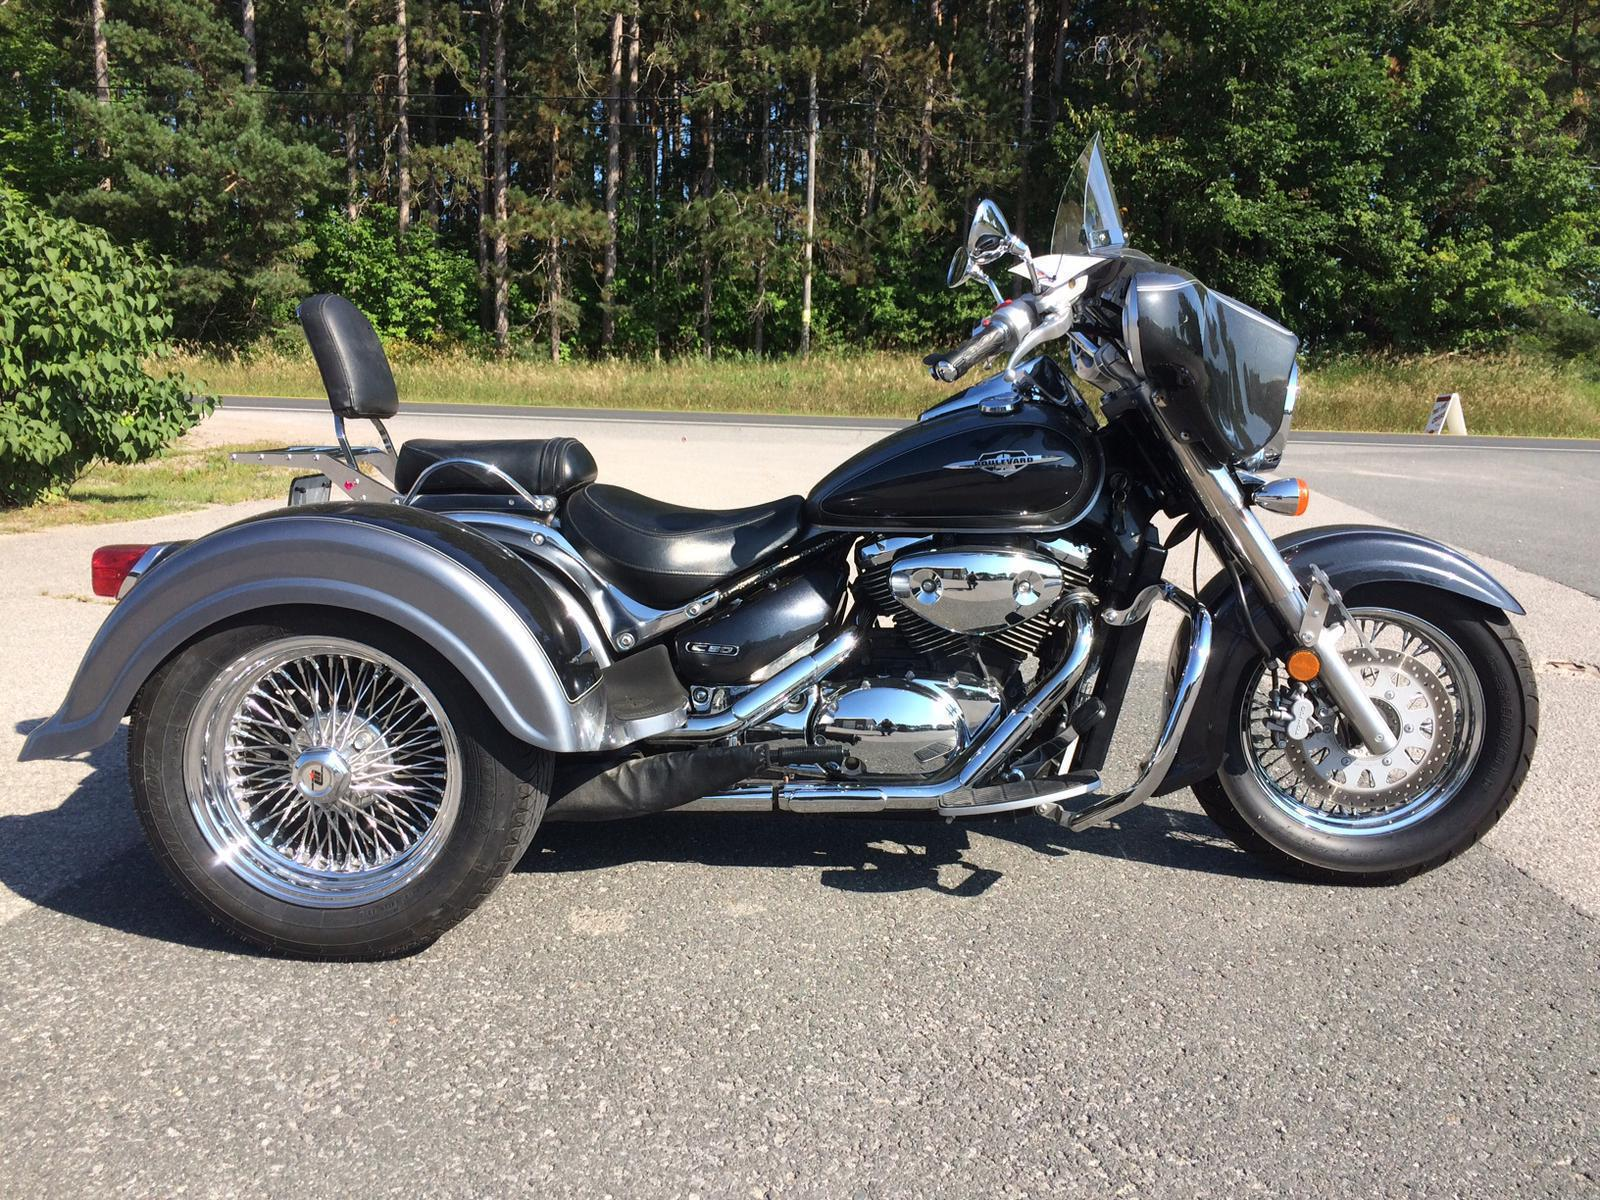 2008 Suzuki BOULEVARD C50 for sale in Lakefield, ON   Classy Chassis ...